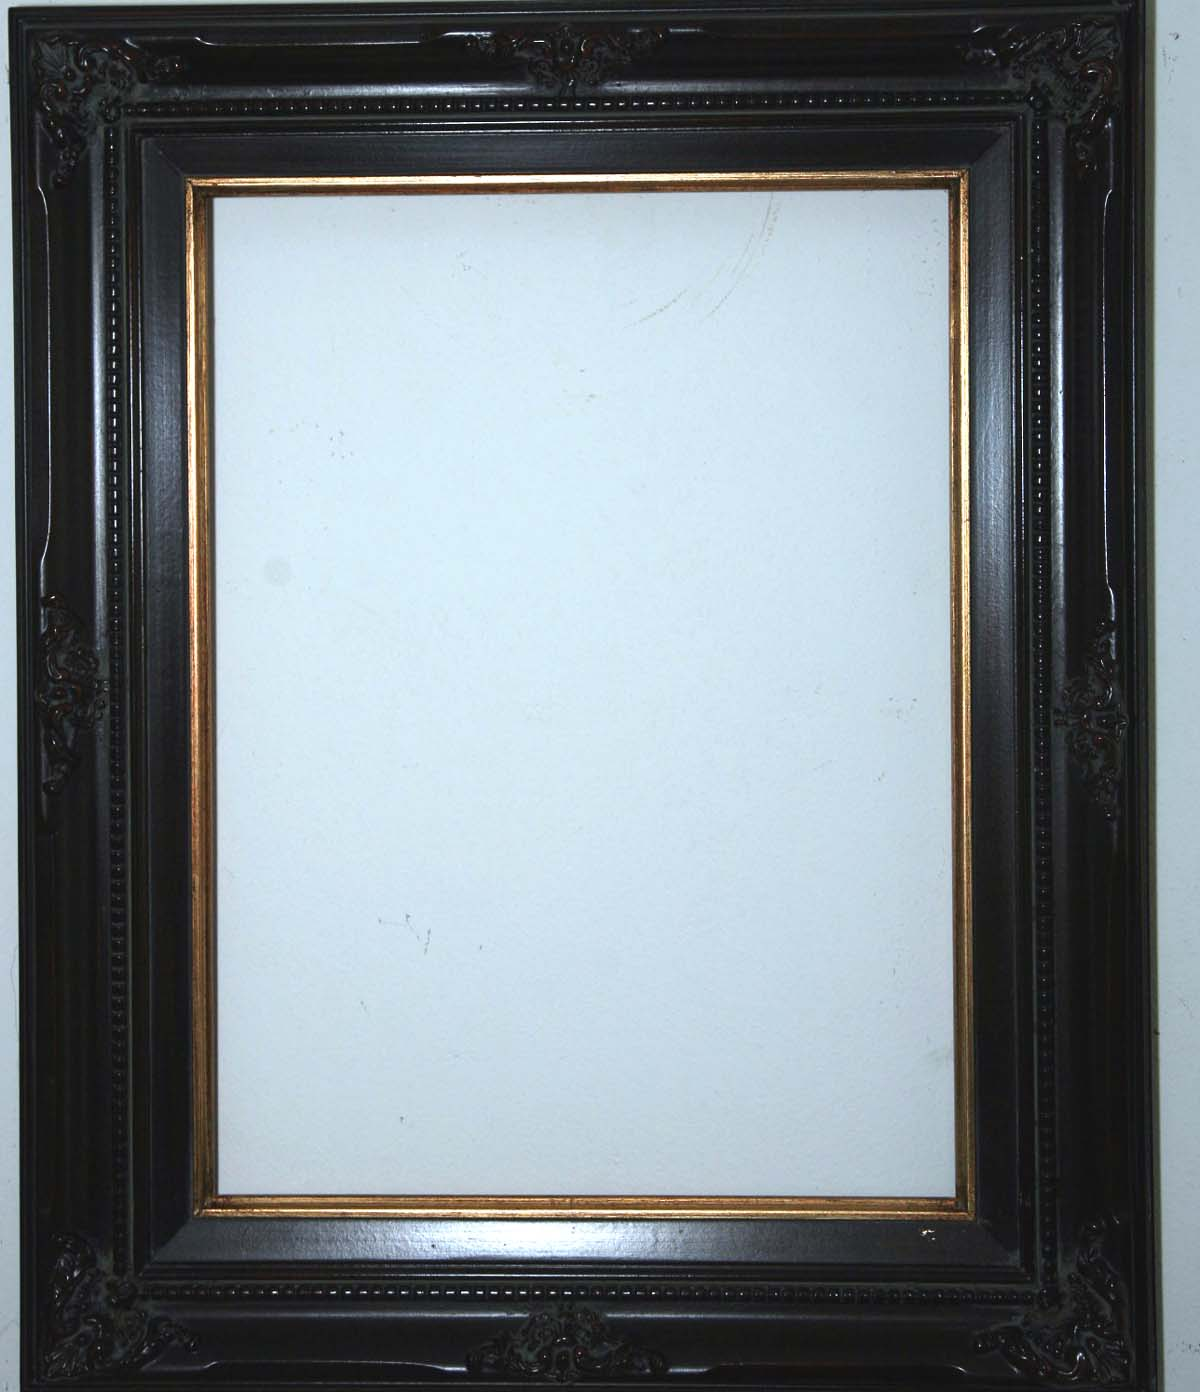 Wood Photo Frames : ... frames photos pictures: Wood frames images wallpapers and photos